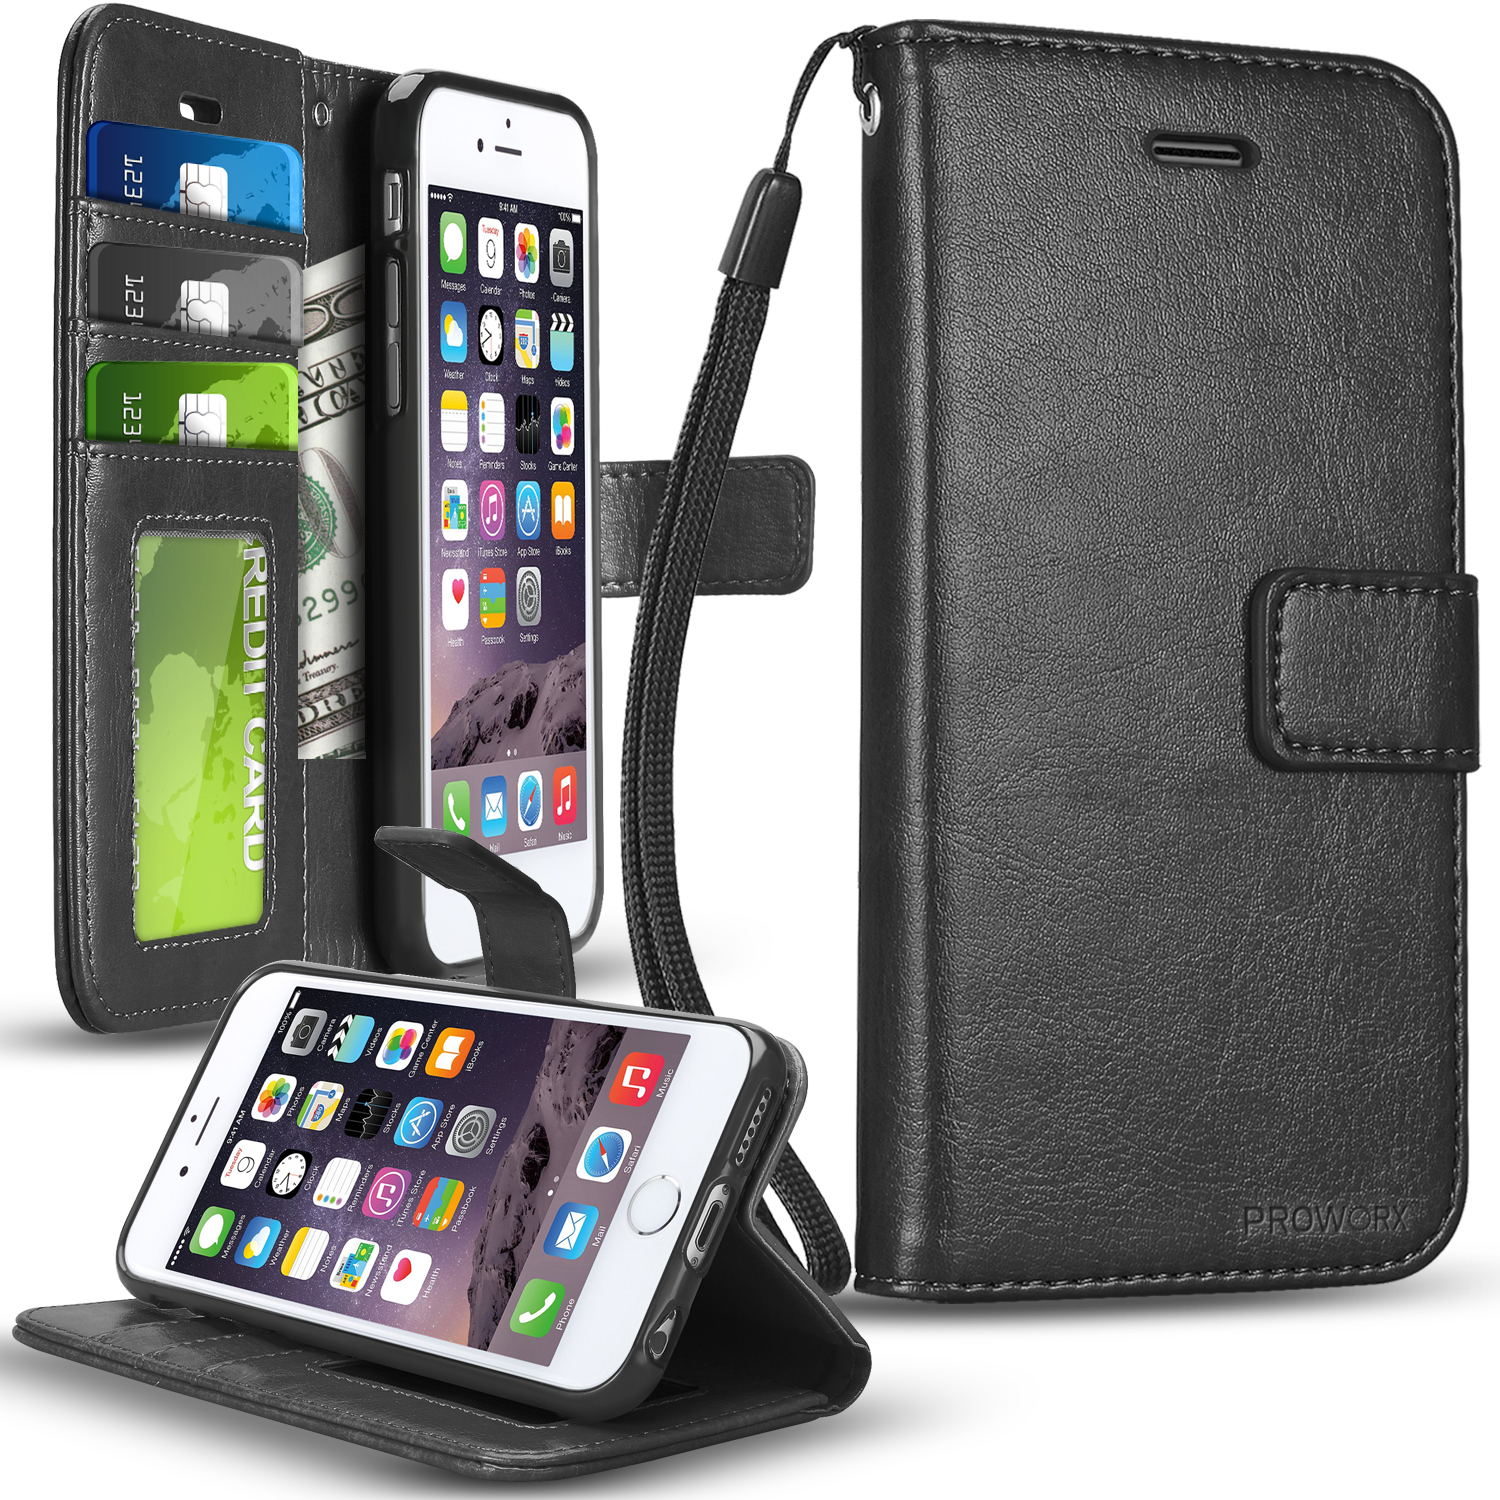 Apple iPhone 6 Black ProWorx Wallet Case Luxury PU Leather Case Cover With Card Slots & Stand